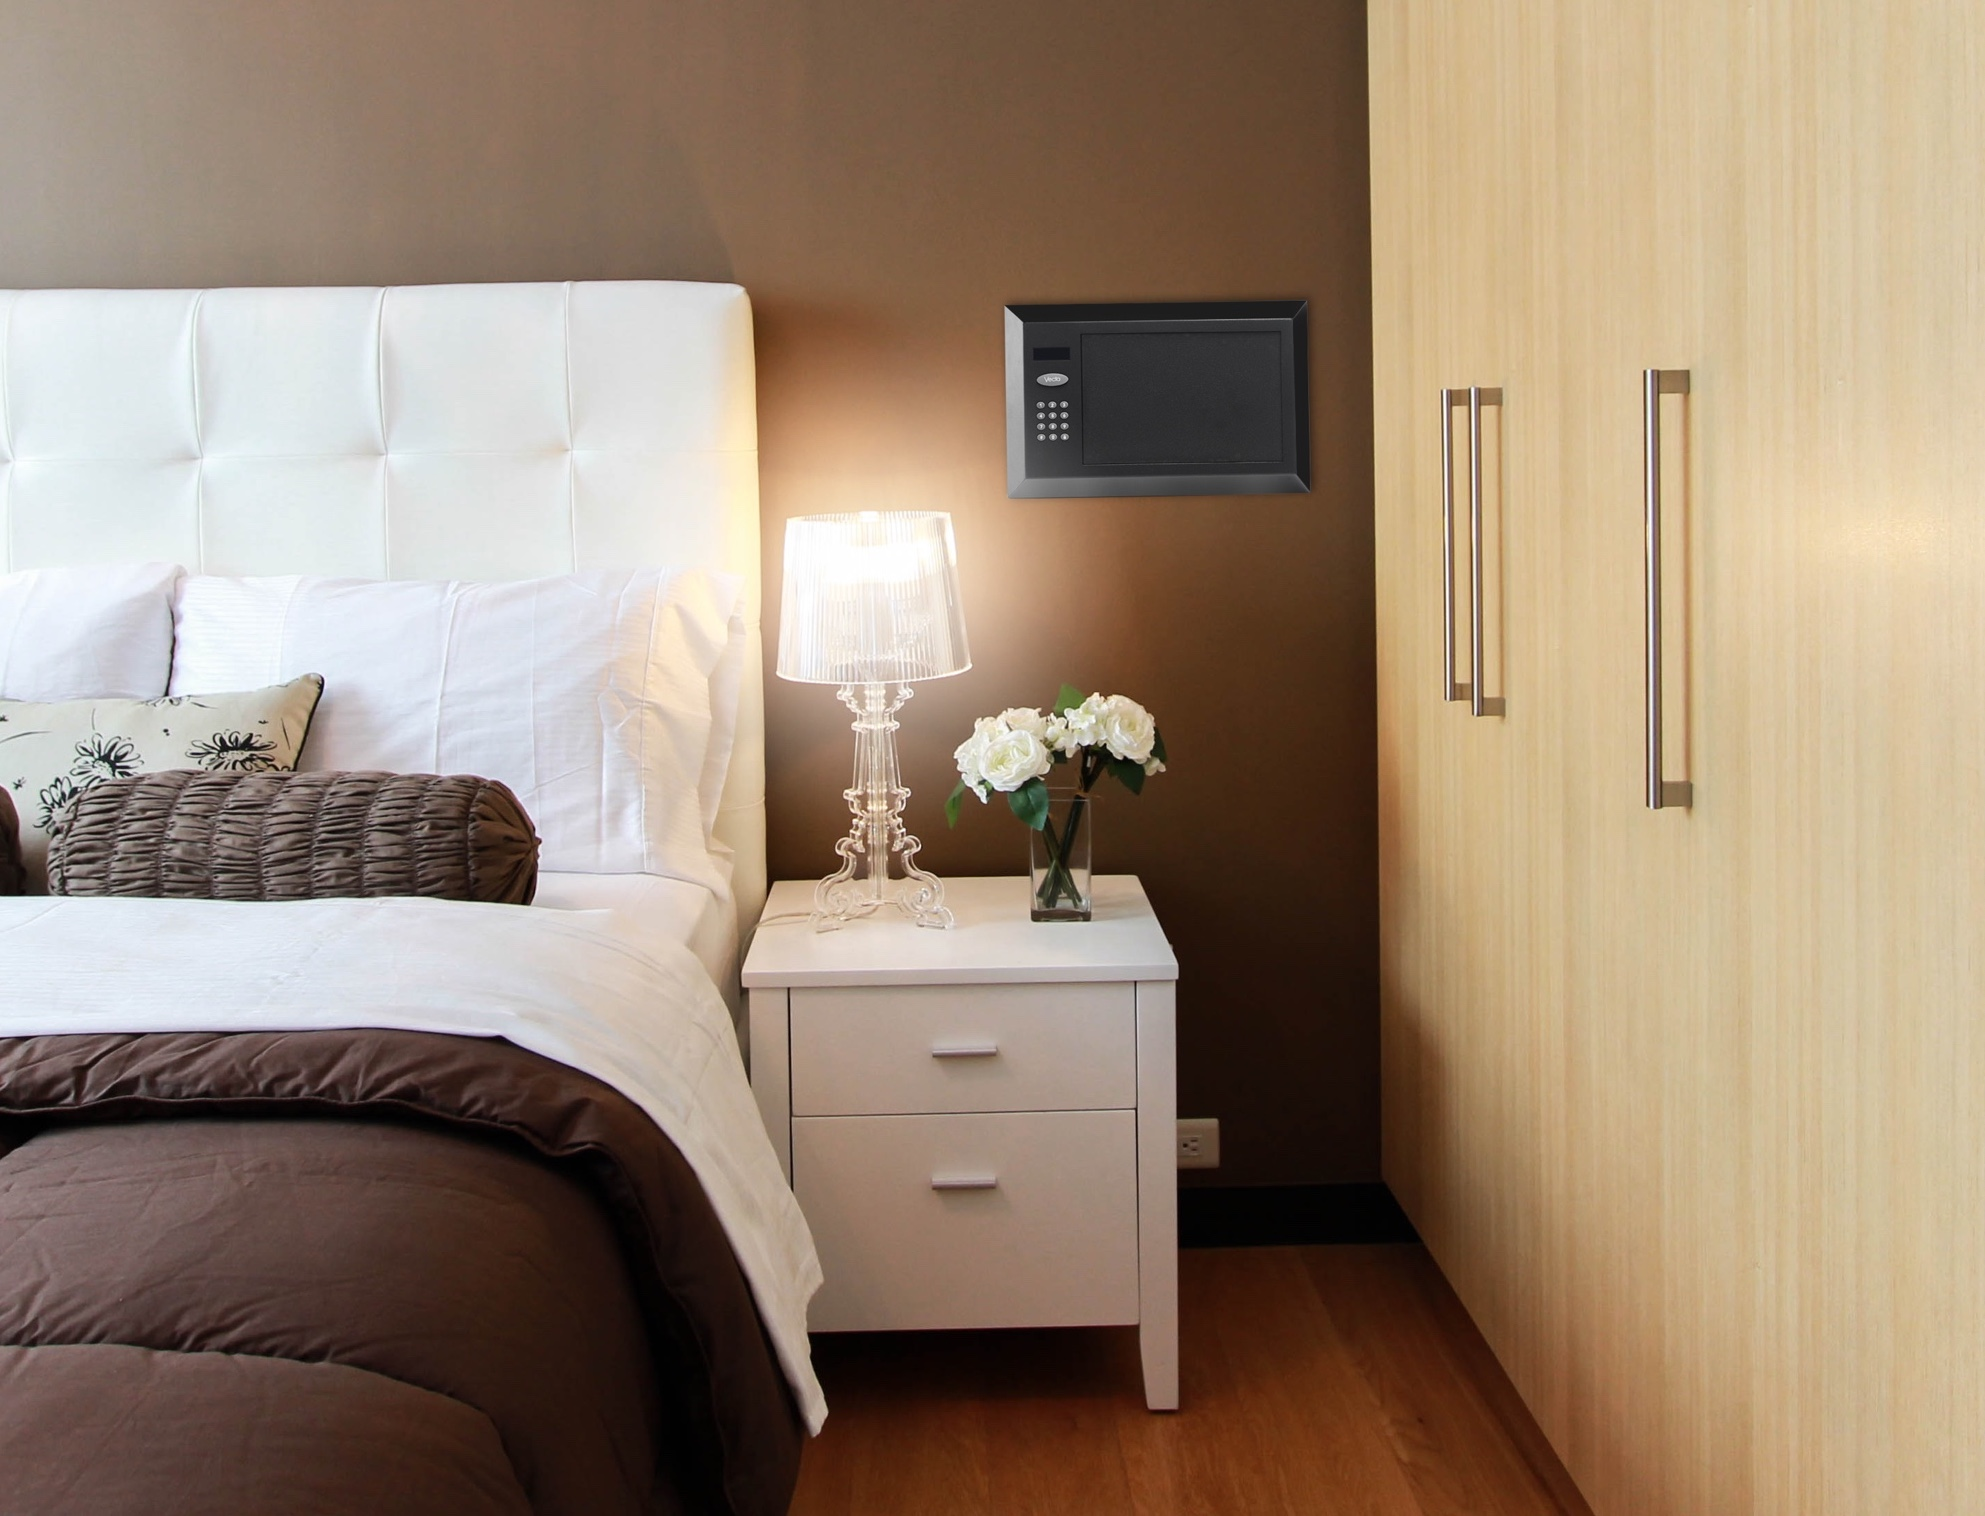 New Wall Safe For In Room Security Hotel Business Weekly